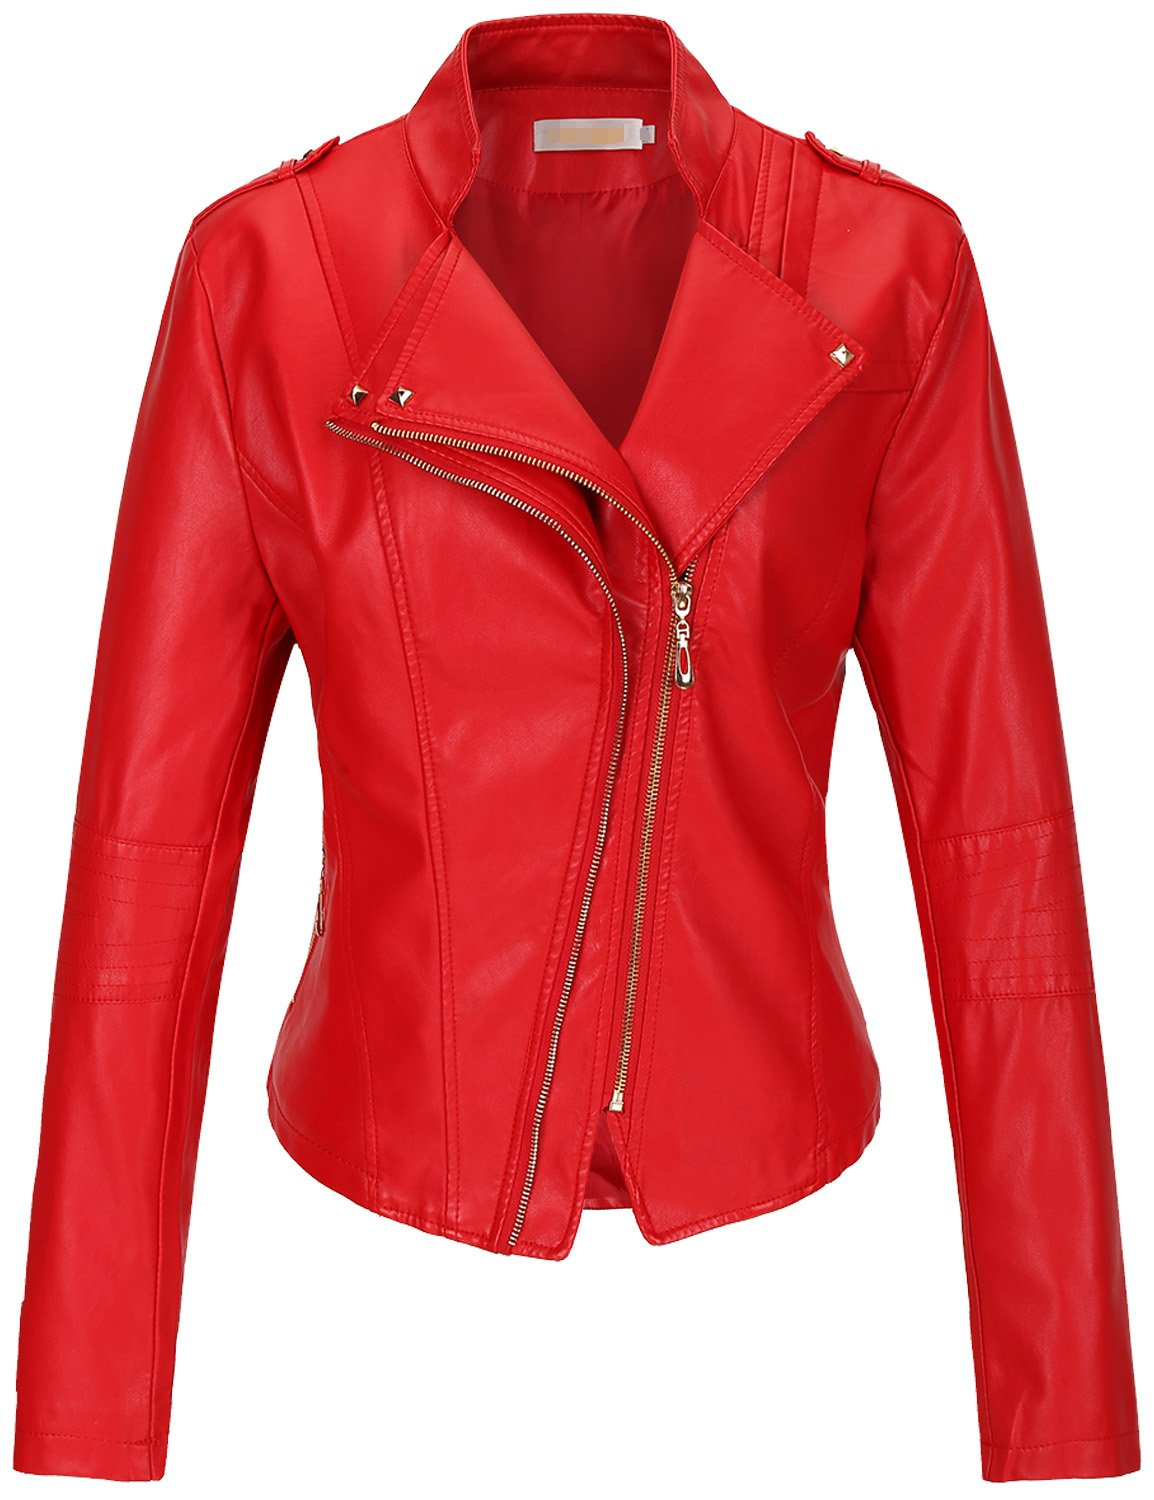 Tanming Women's Slim Zipper Color Faux Leather Jacket Red (Large, Red)